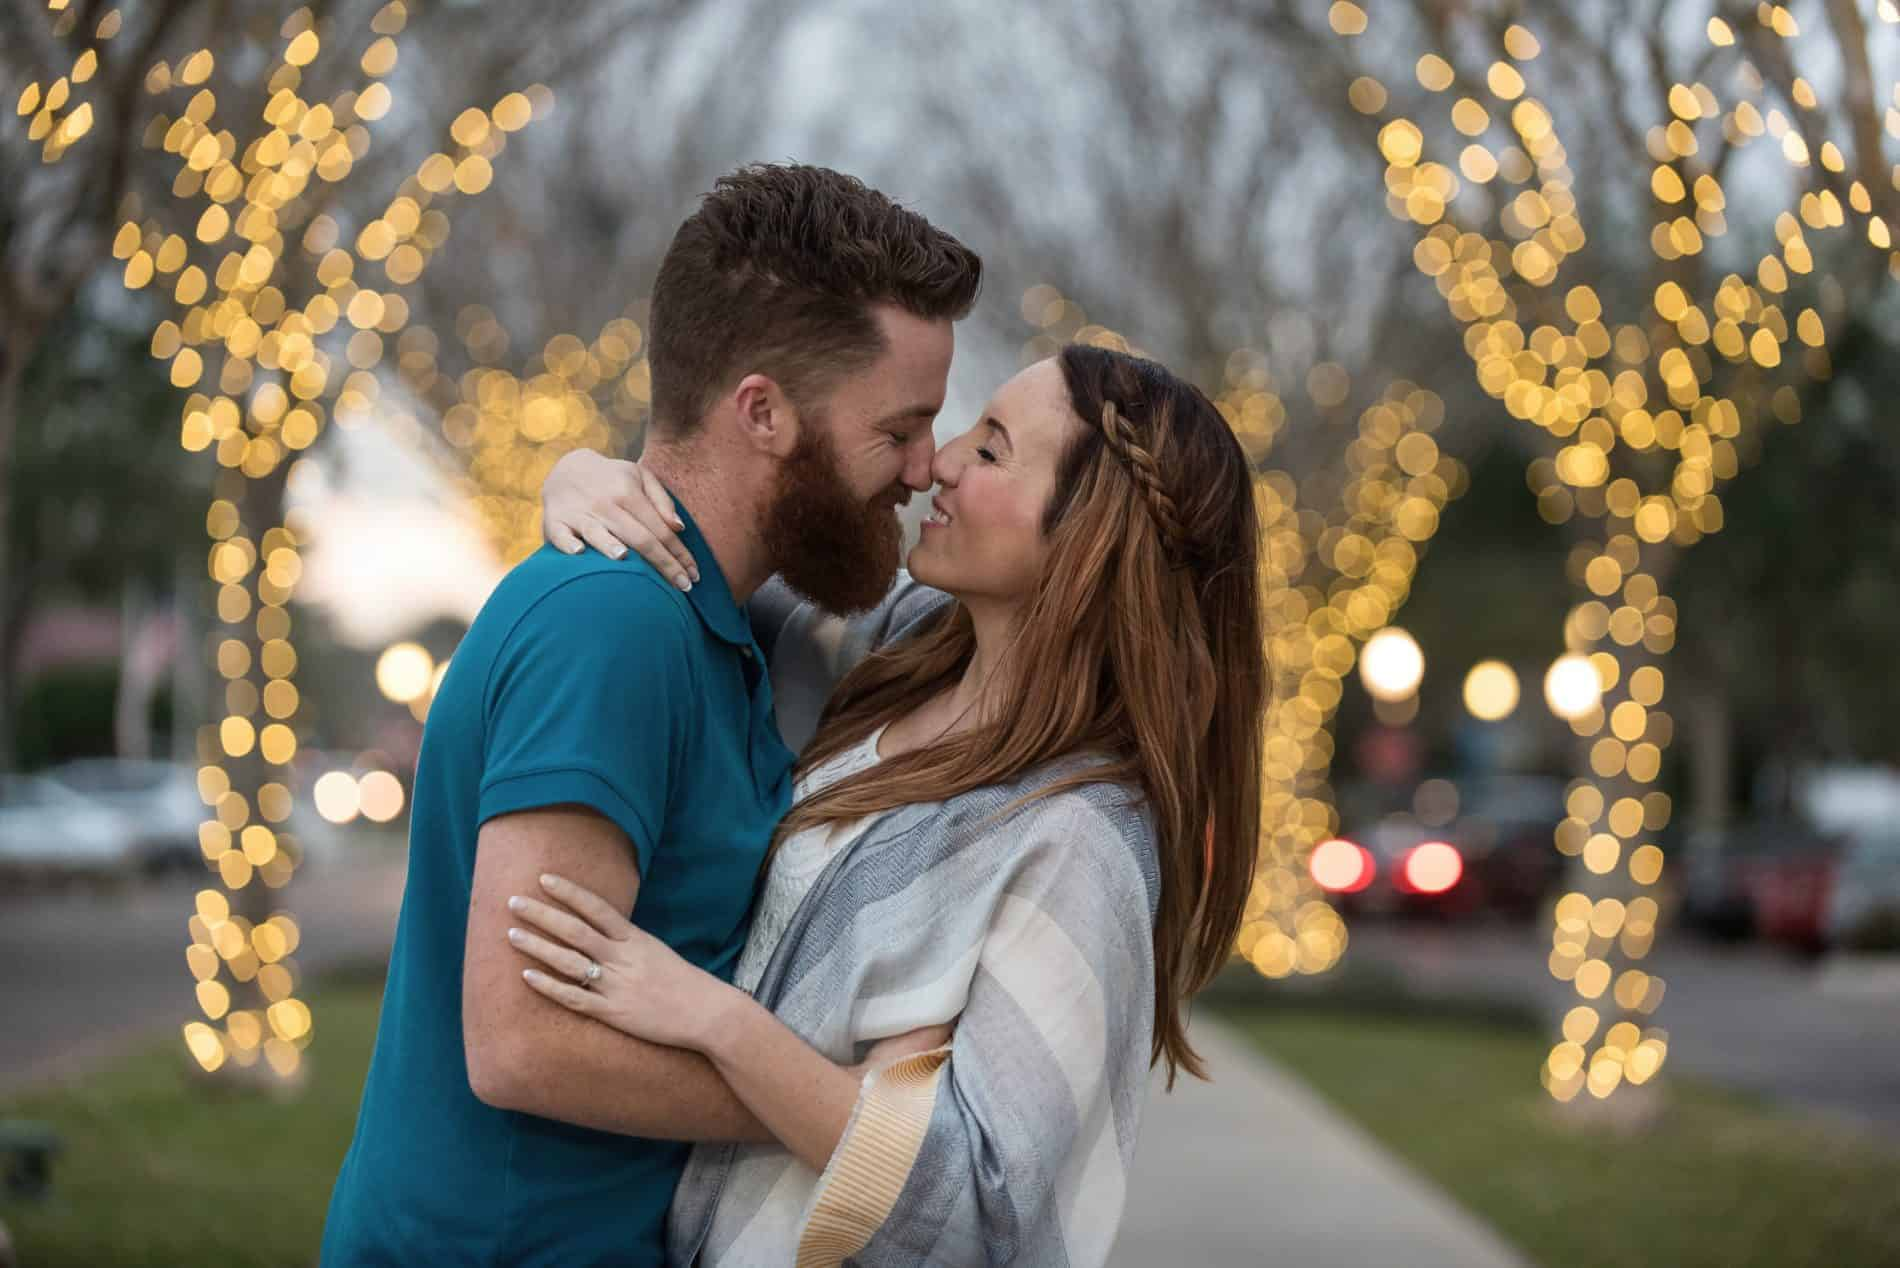 Couple ends their engagement session with a playful kiss